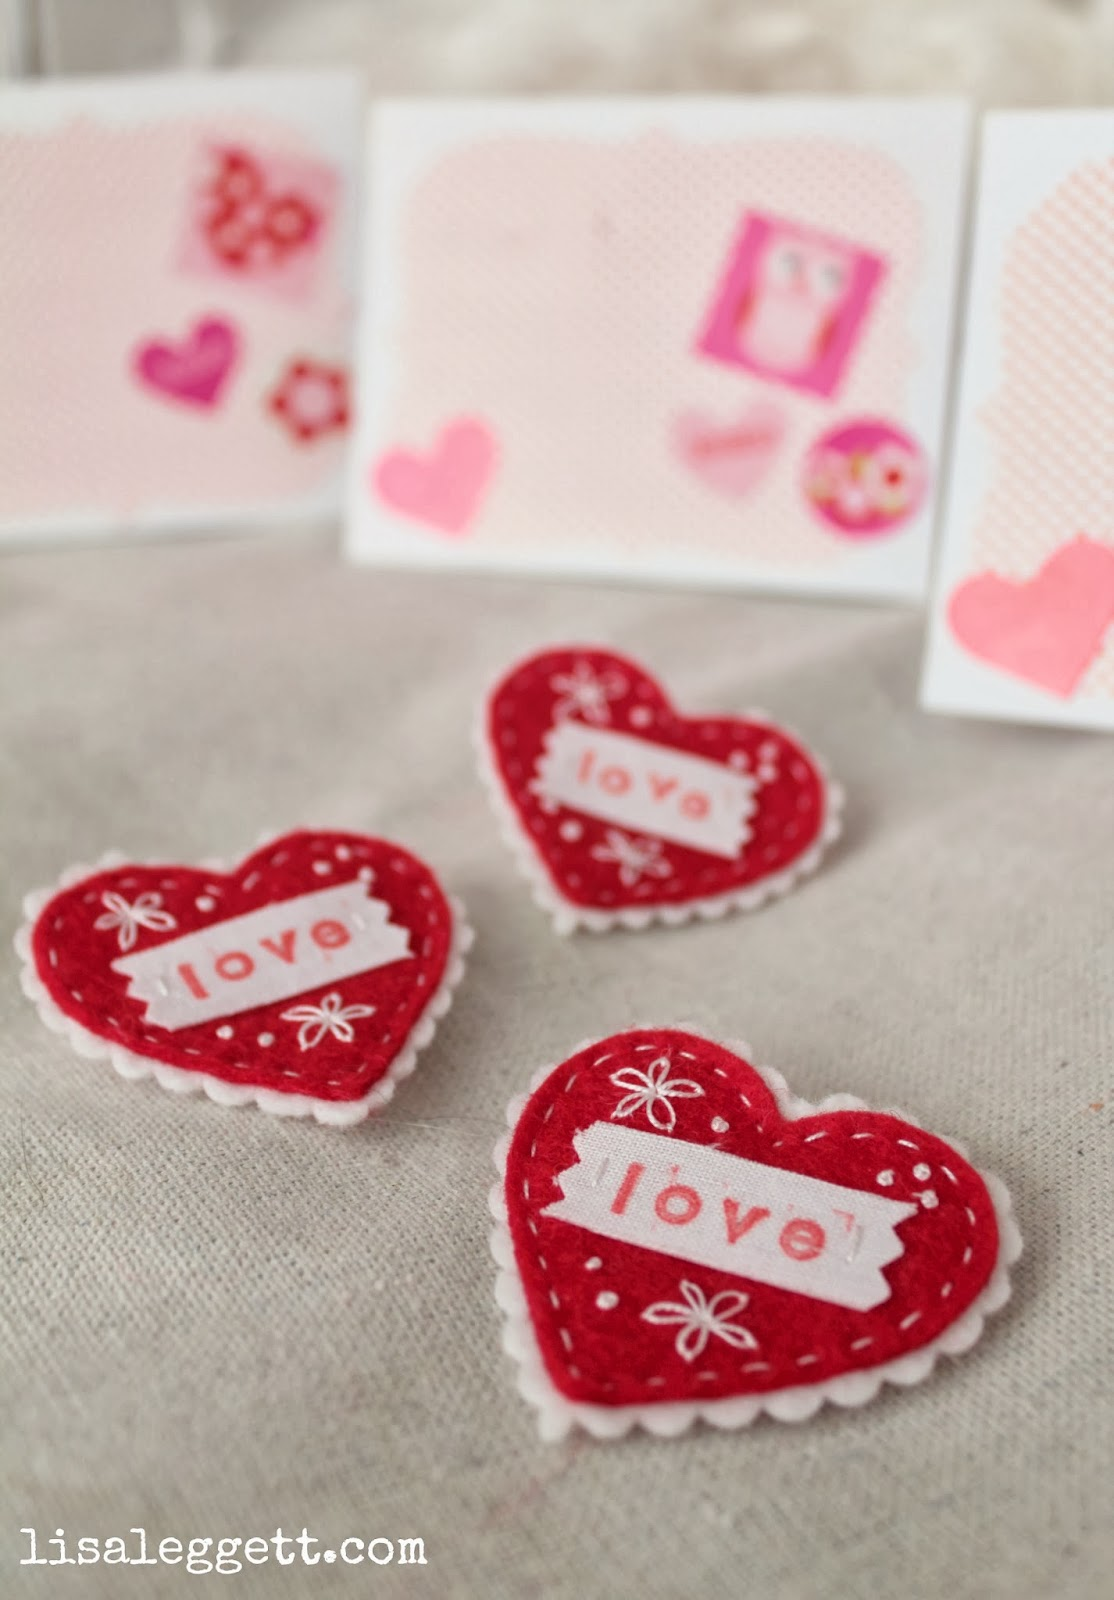 Felt Heart Valentine Pins by Lisa Leggett